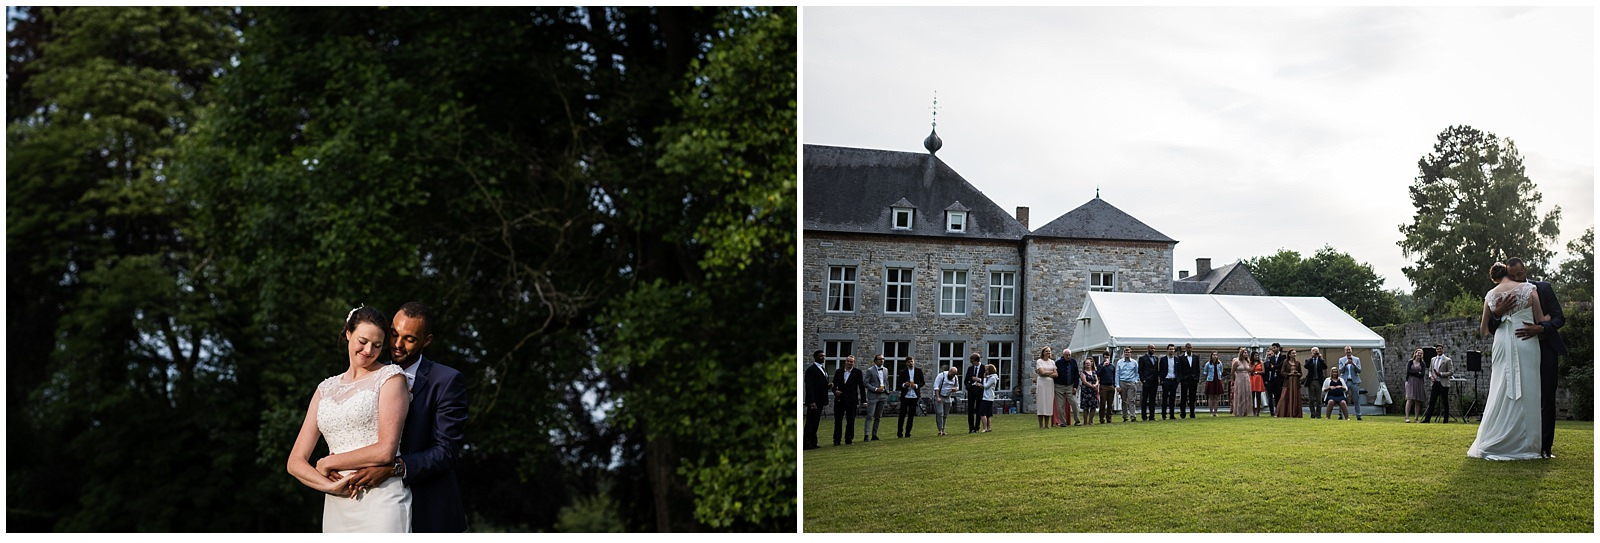 Outdoor wedding in Belgium